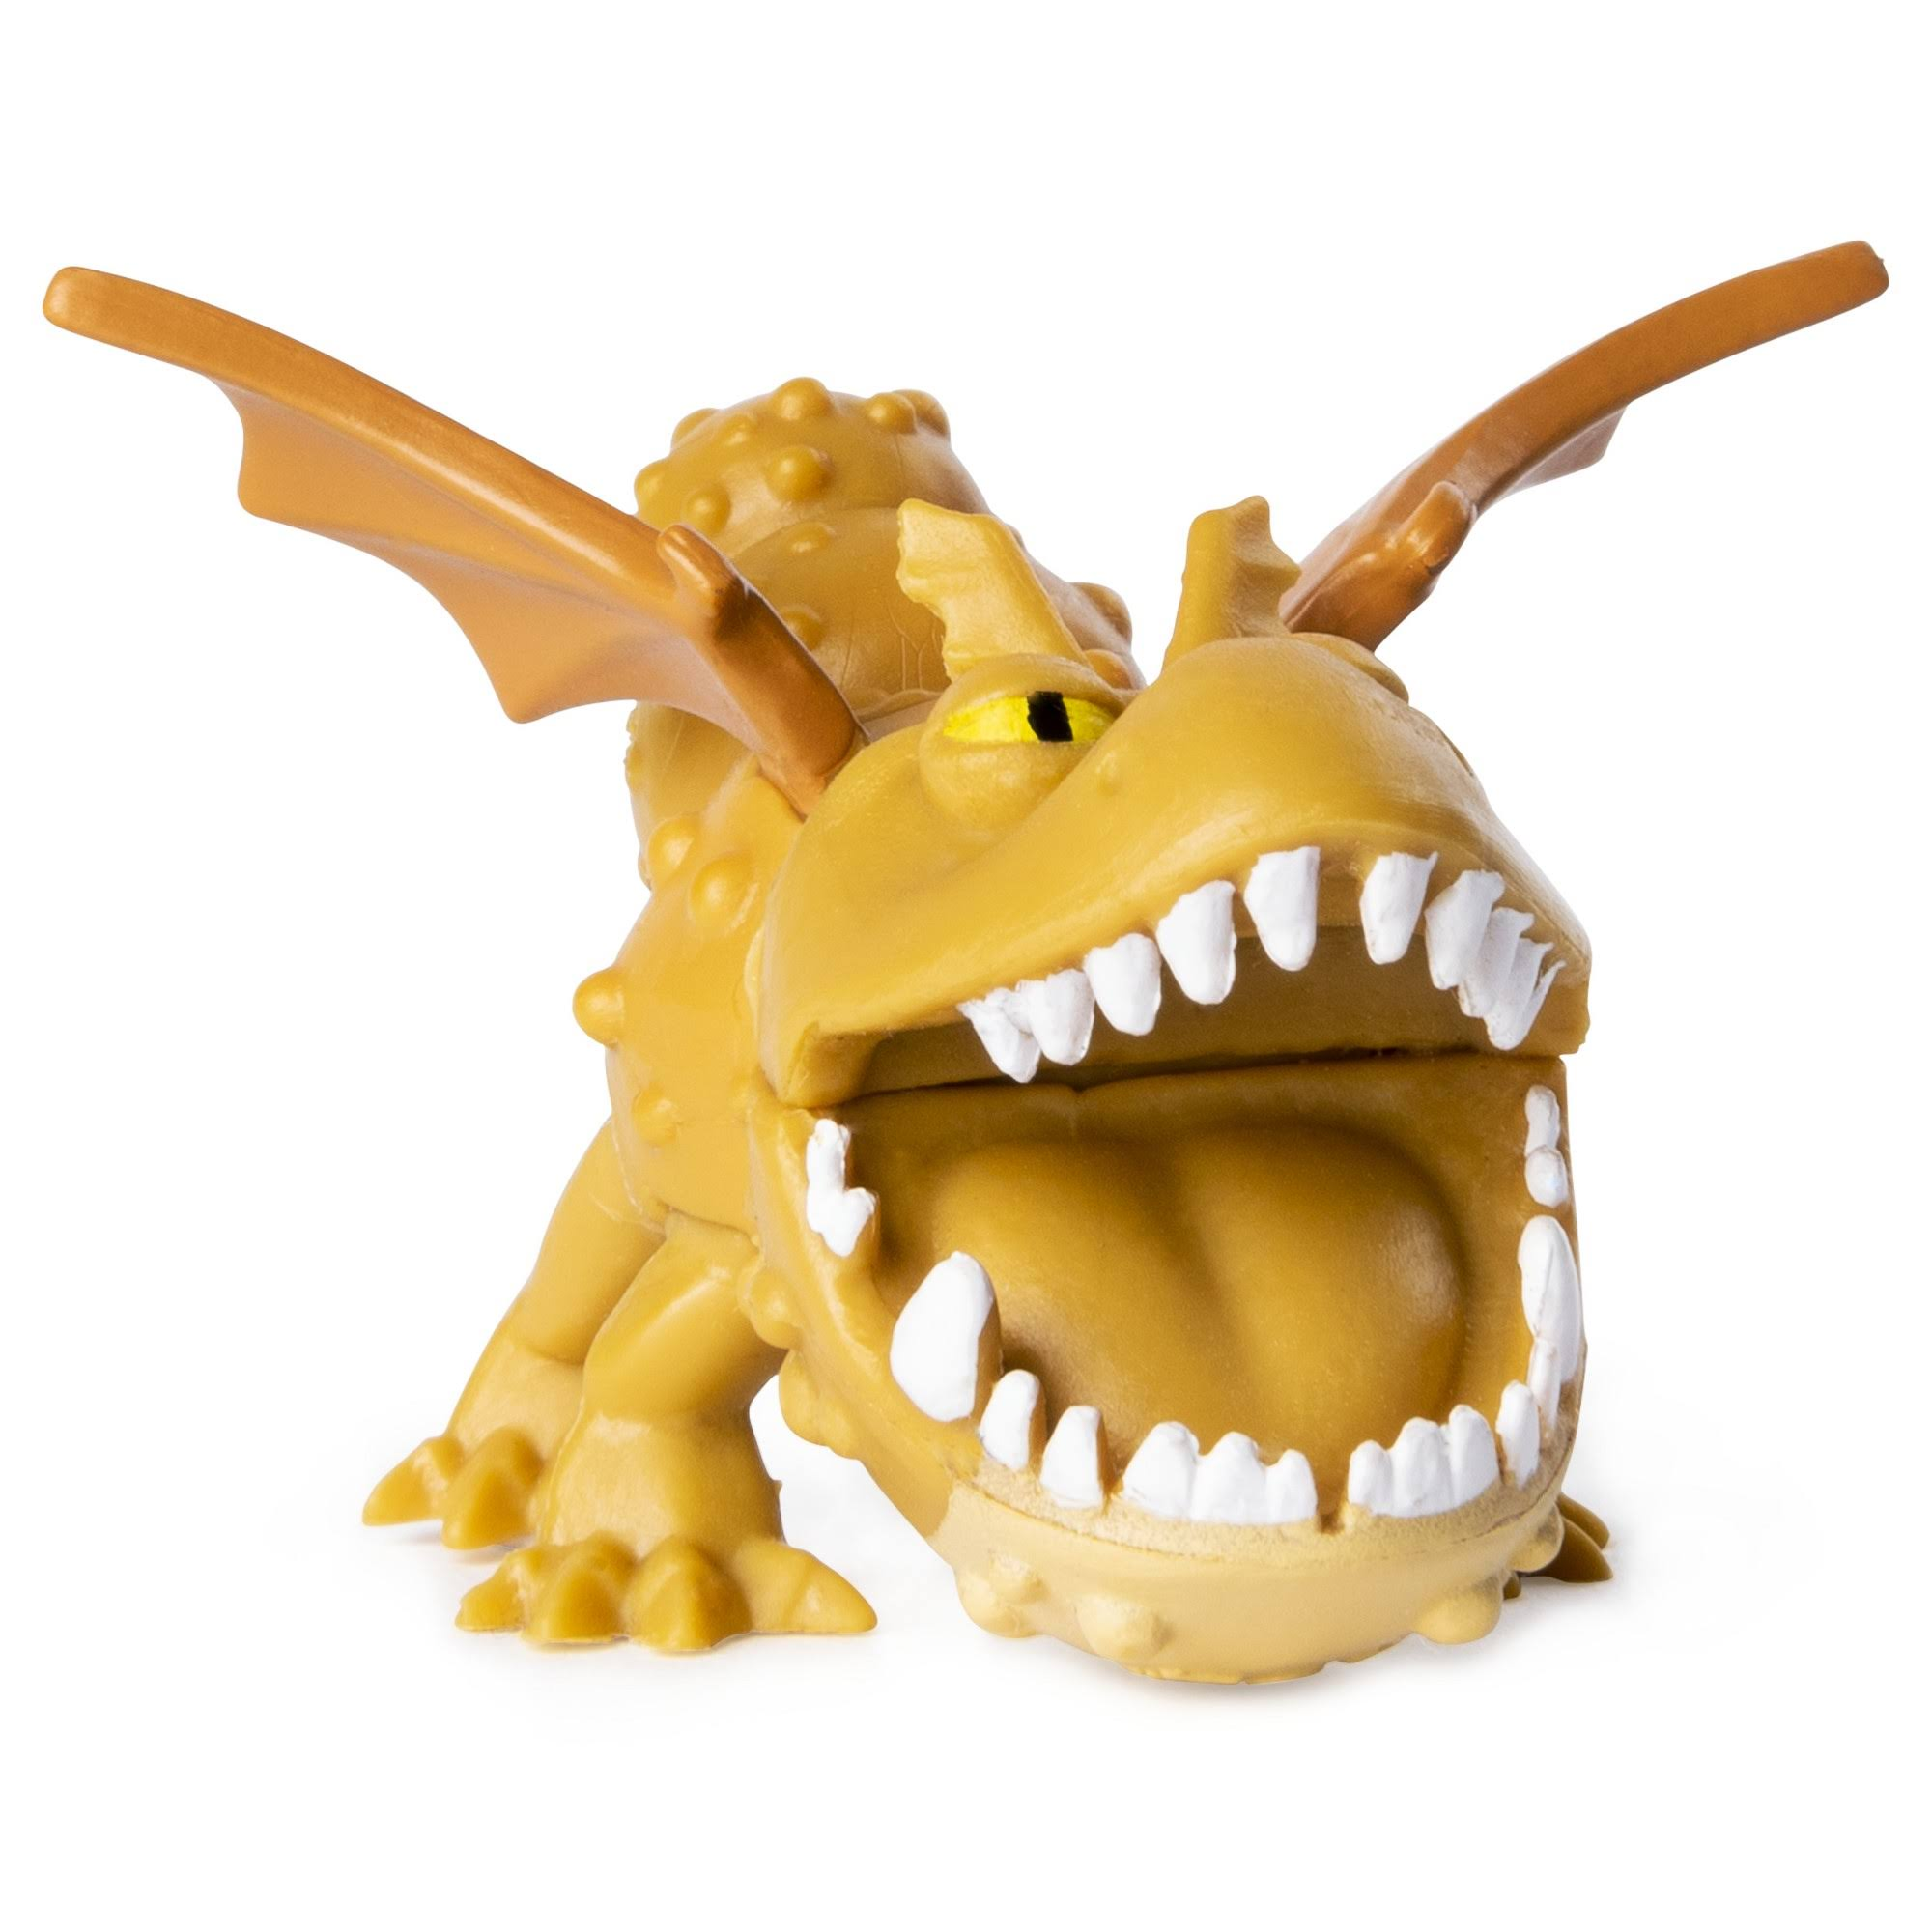 Dreamworks Dragons Mystery Dragons, Meatlug Collectible Mini Dragon Figure, for Kids Aged 4 and Up